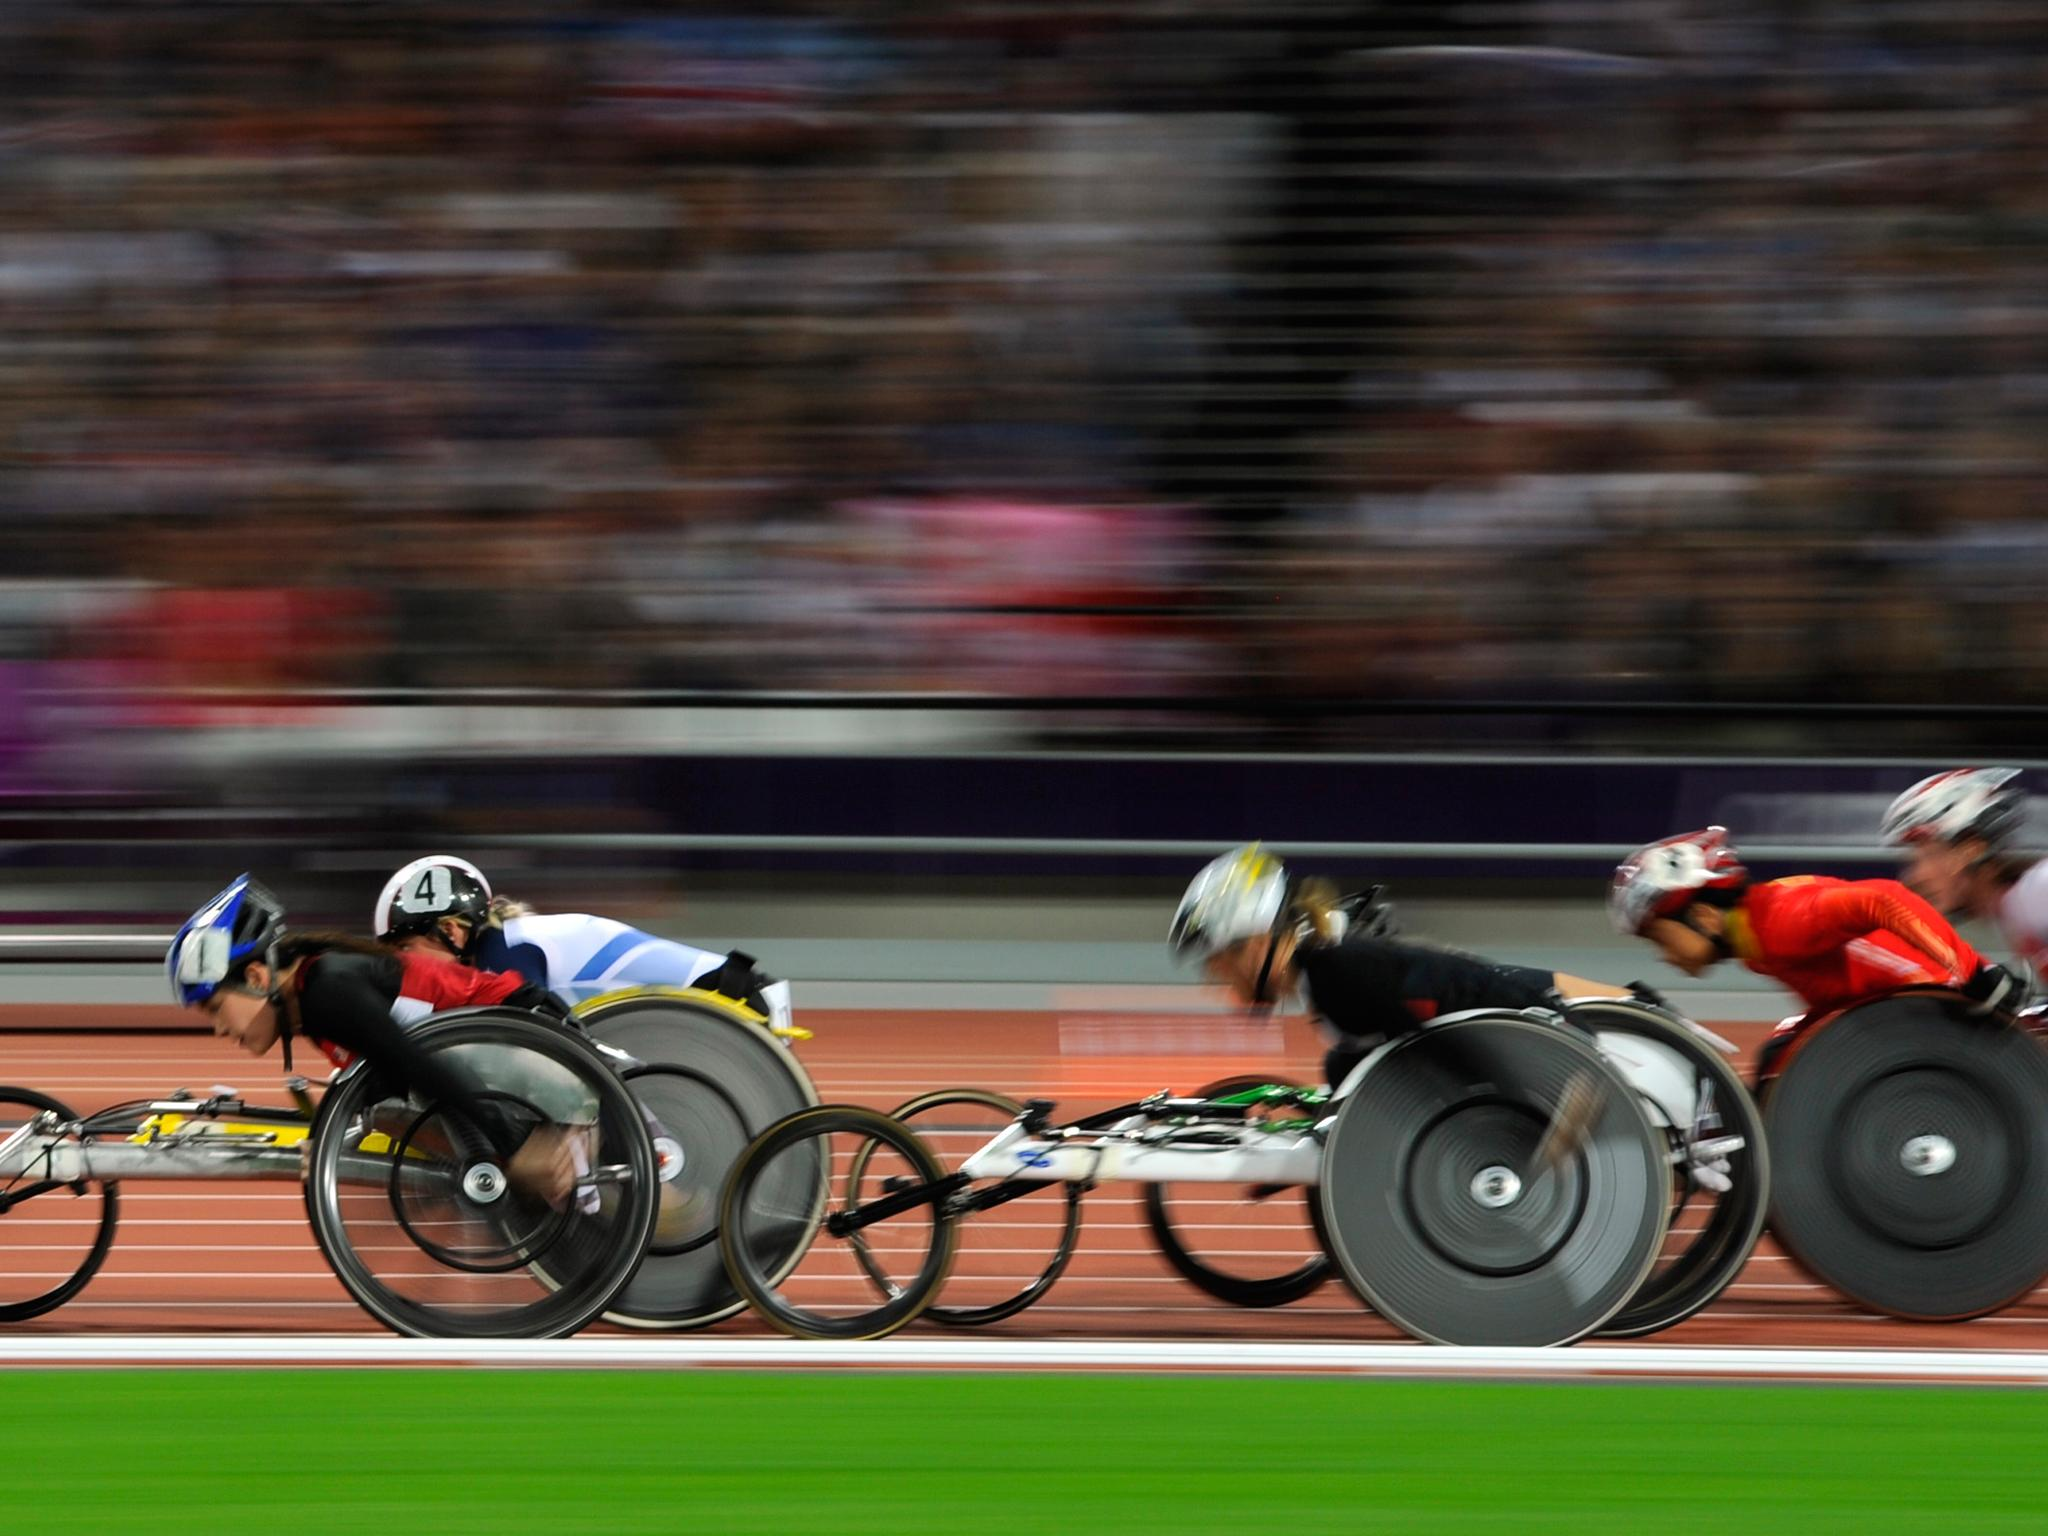 Rio 2016: Organisers 'spend money meant for the Paralympics on Olympics'